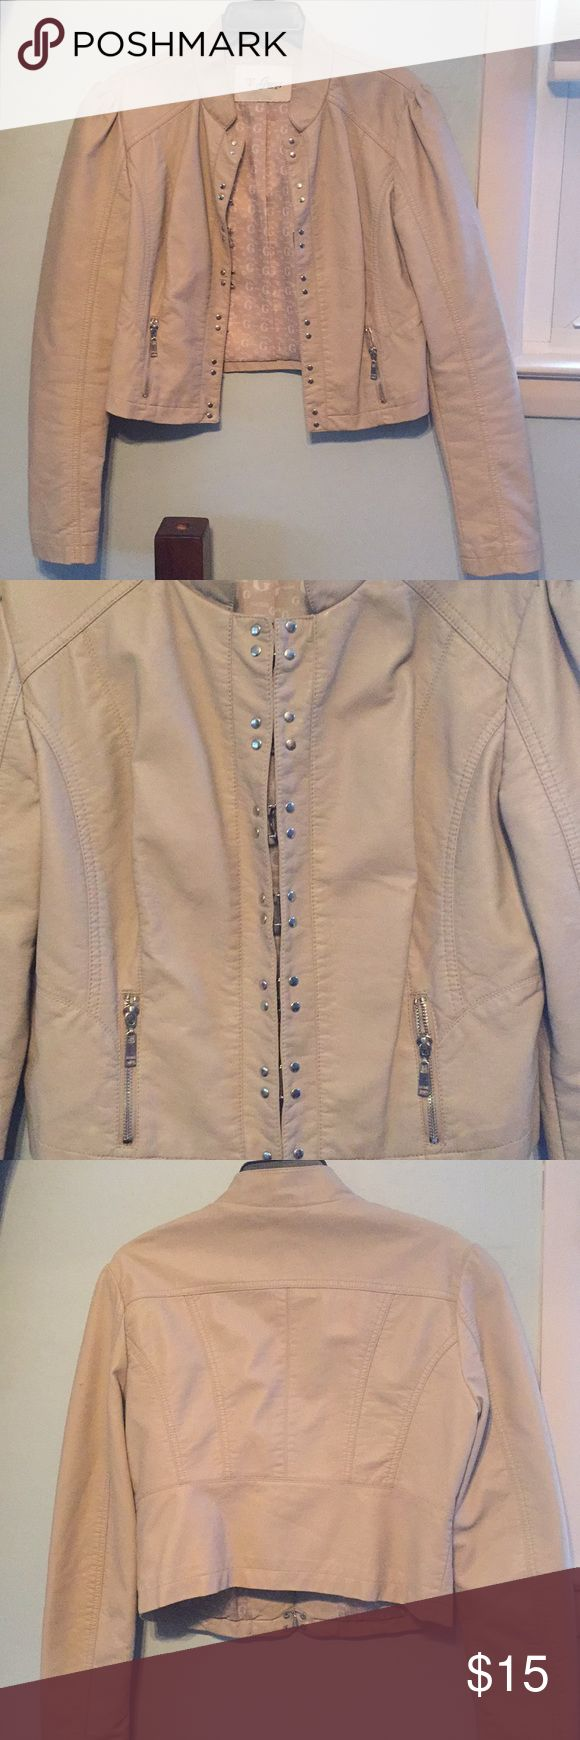 Guess tan jacket Jacket with 2 zipper pockets and decorative silver clasps. Guess Jackets & Coats Jean Jackets